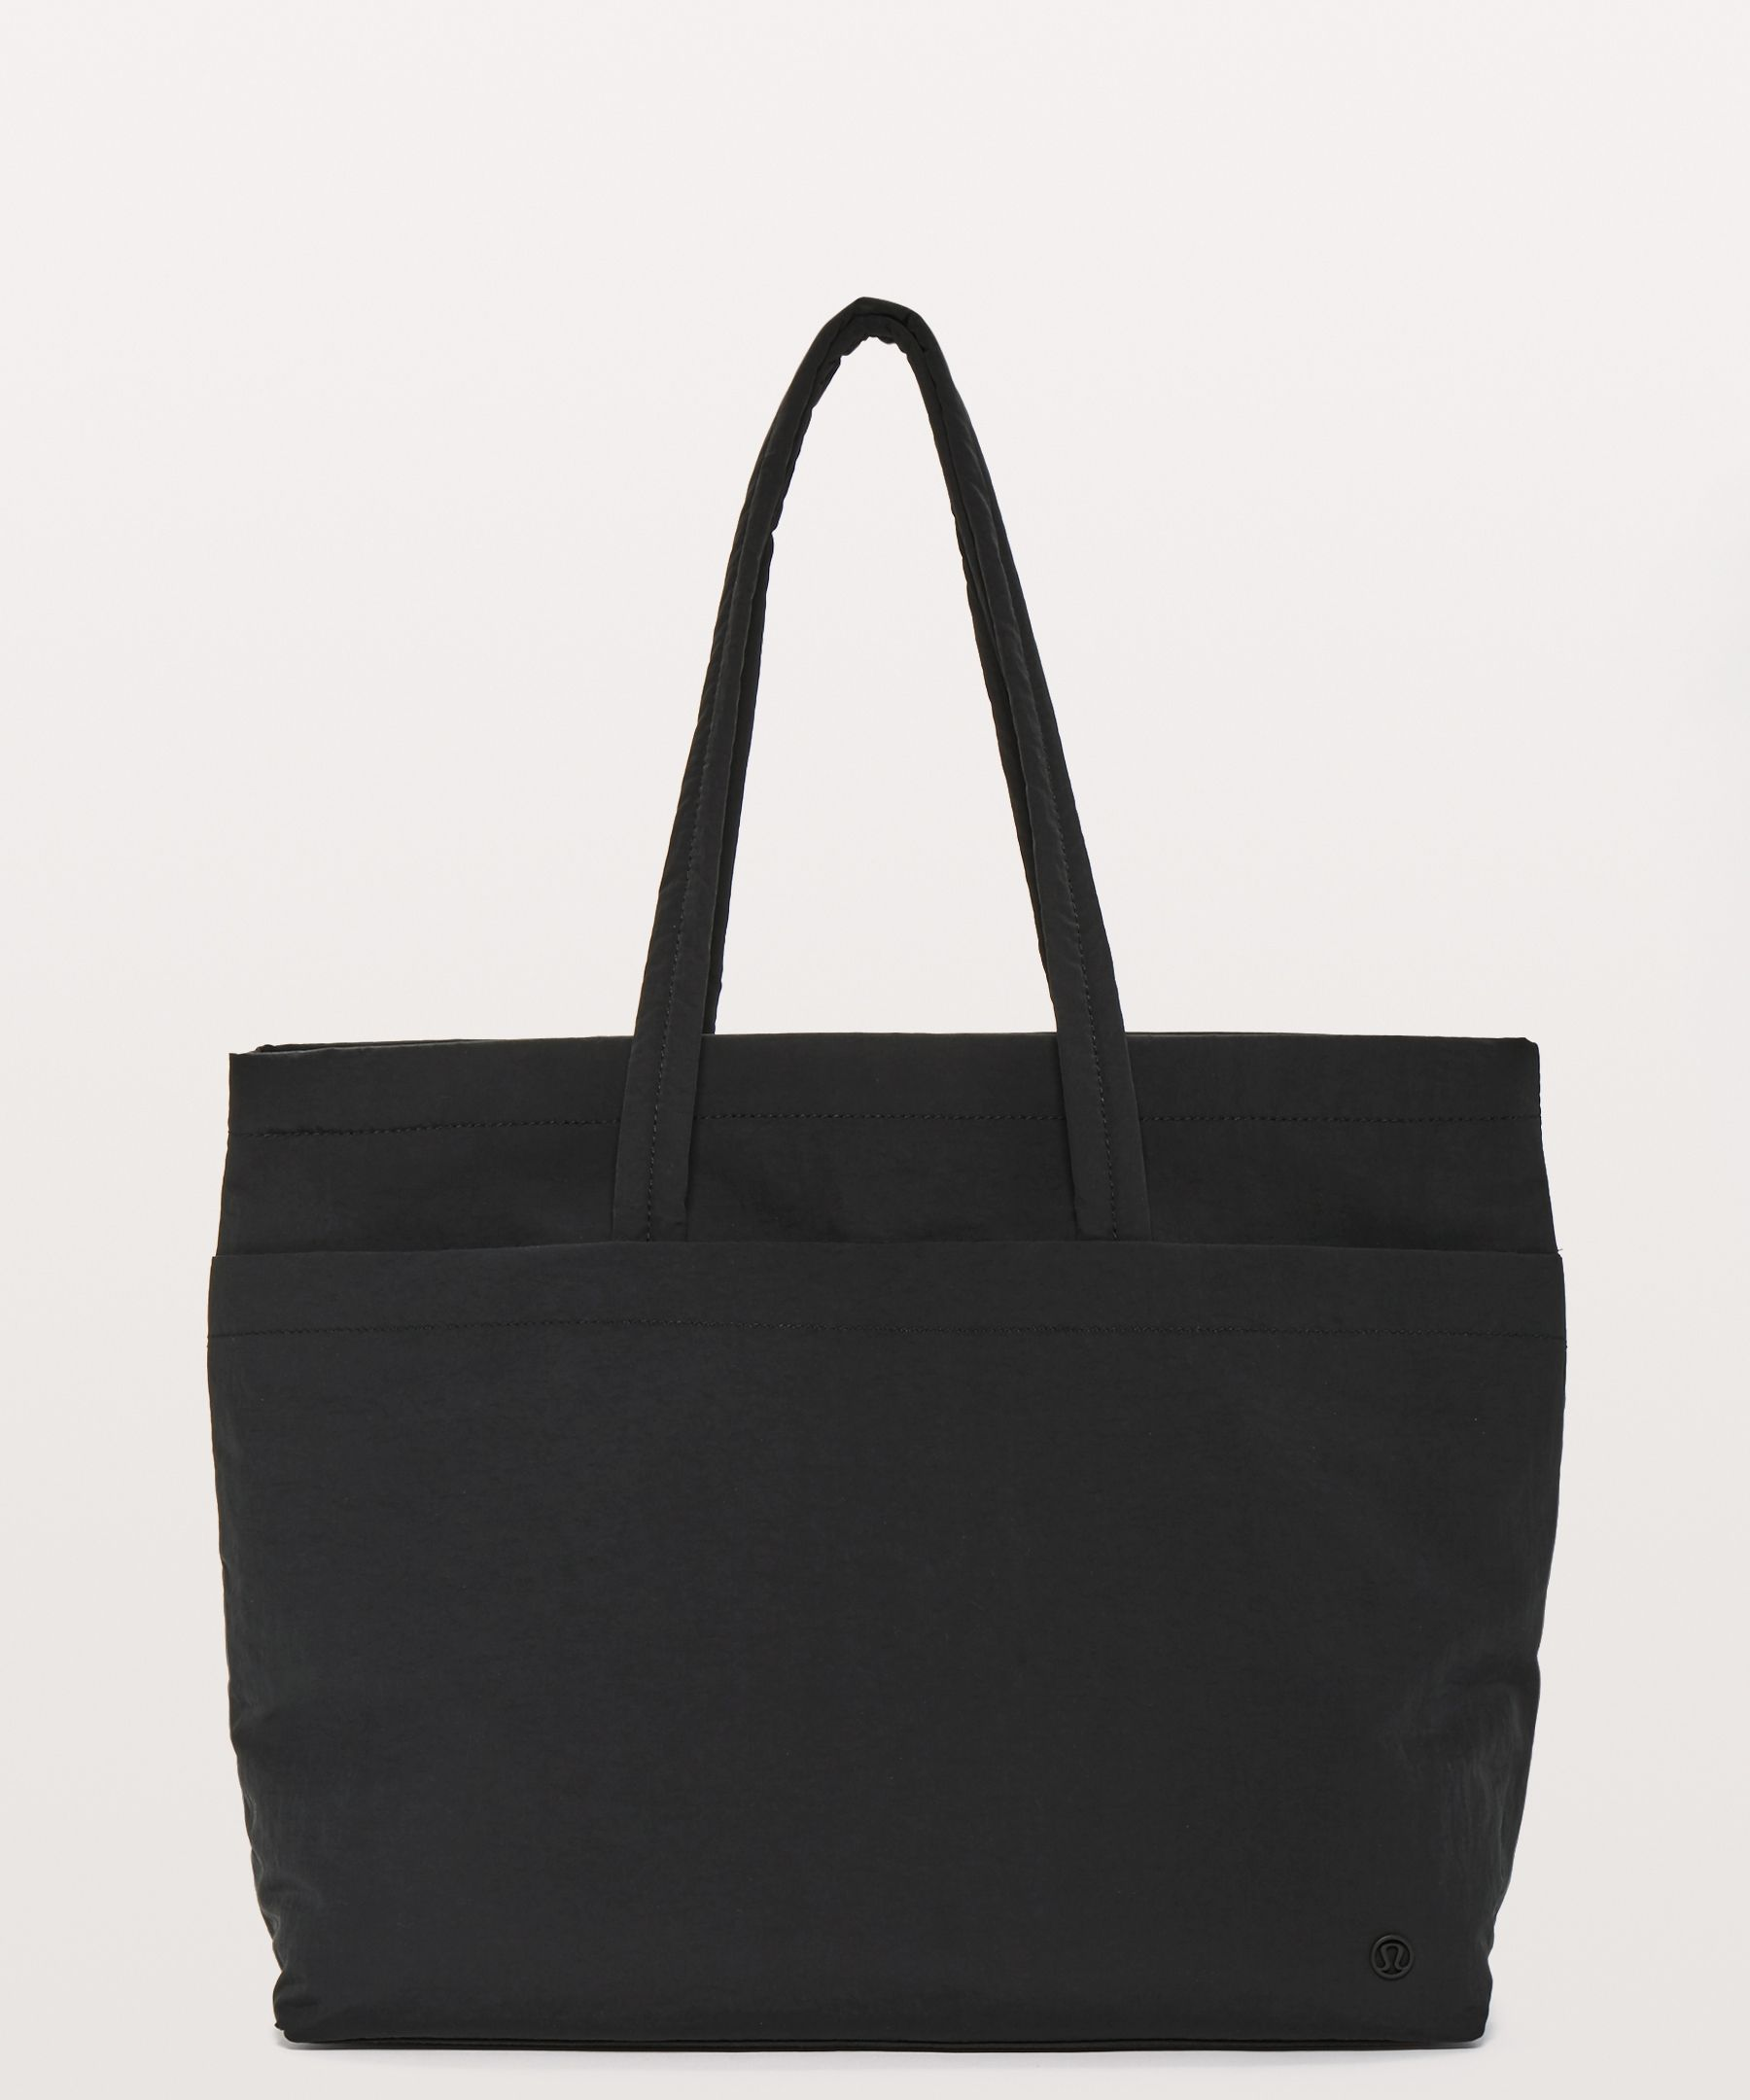 f8da42f6d2d On My Level Tote Large 15L - With pockets inside and out, this ...